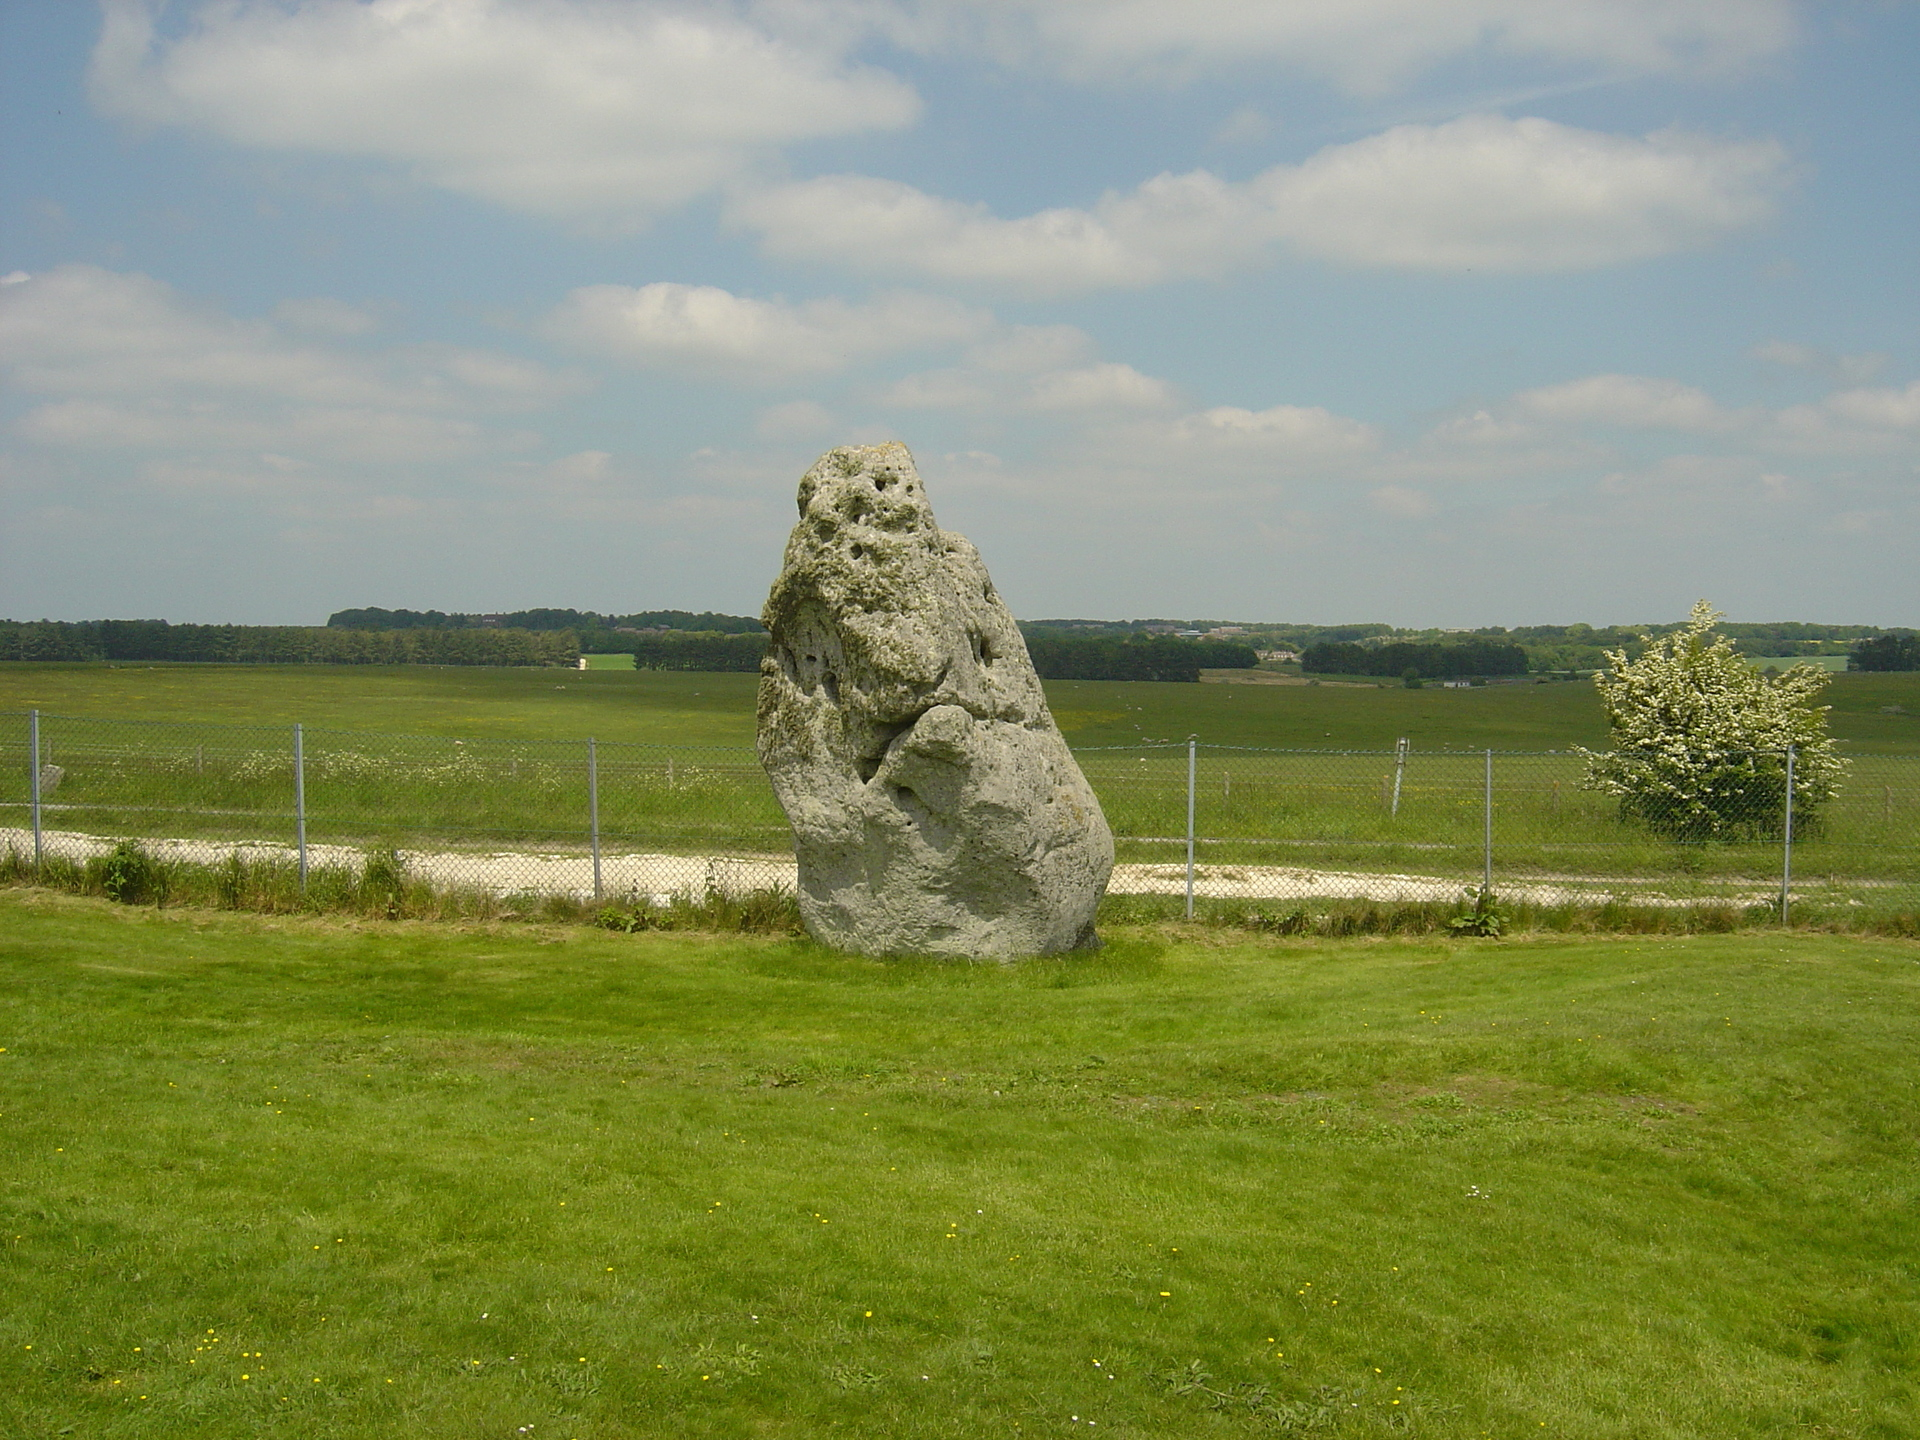 16-foot-tall-Heel-stone-is-centre-attraction